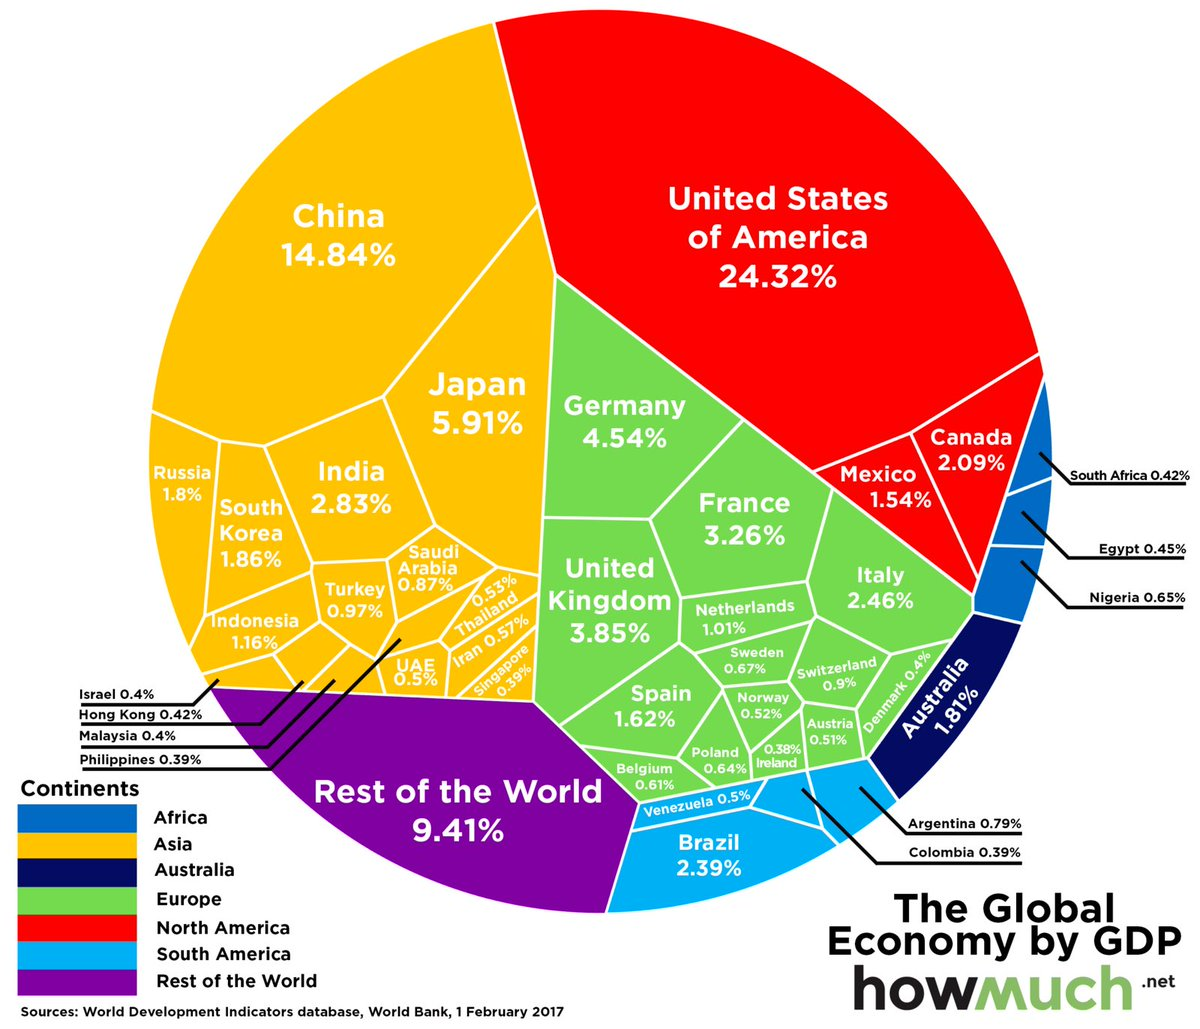 https://howmuch.net/articles/the-global-economy-by-GDP